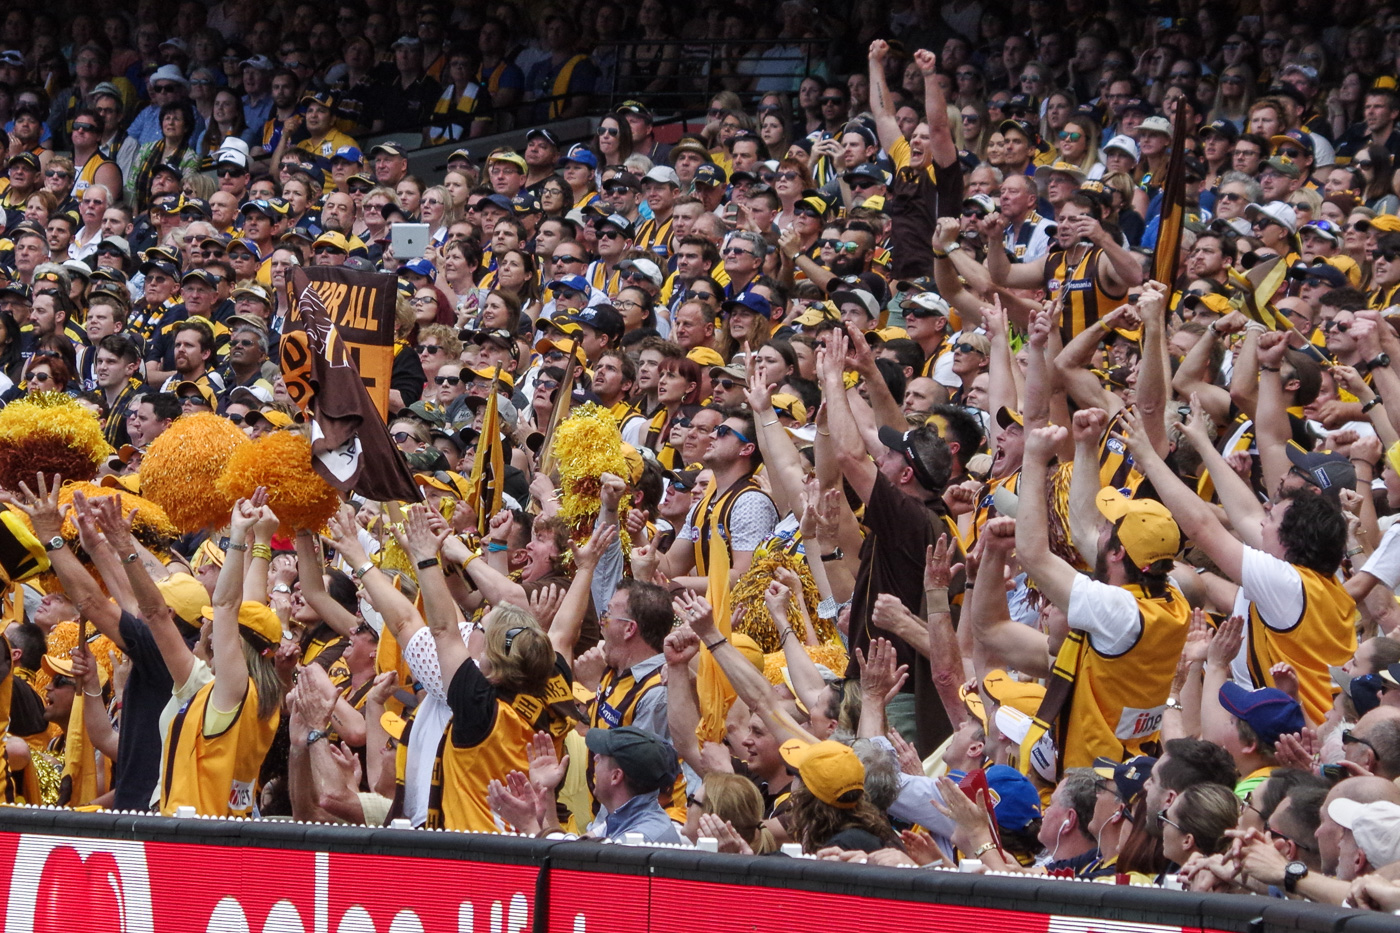 AFL crowds increase to 75 percent capacity